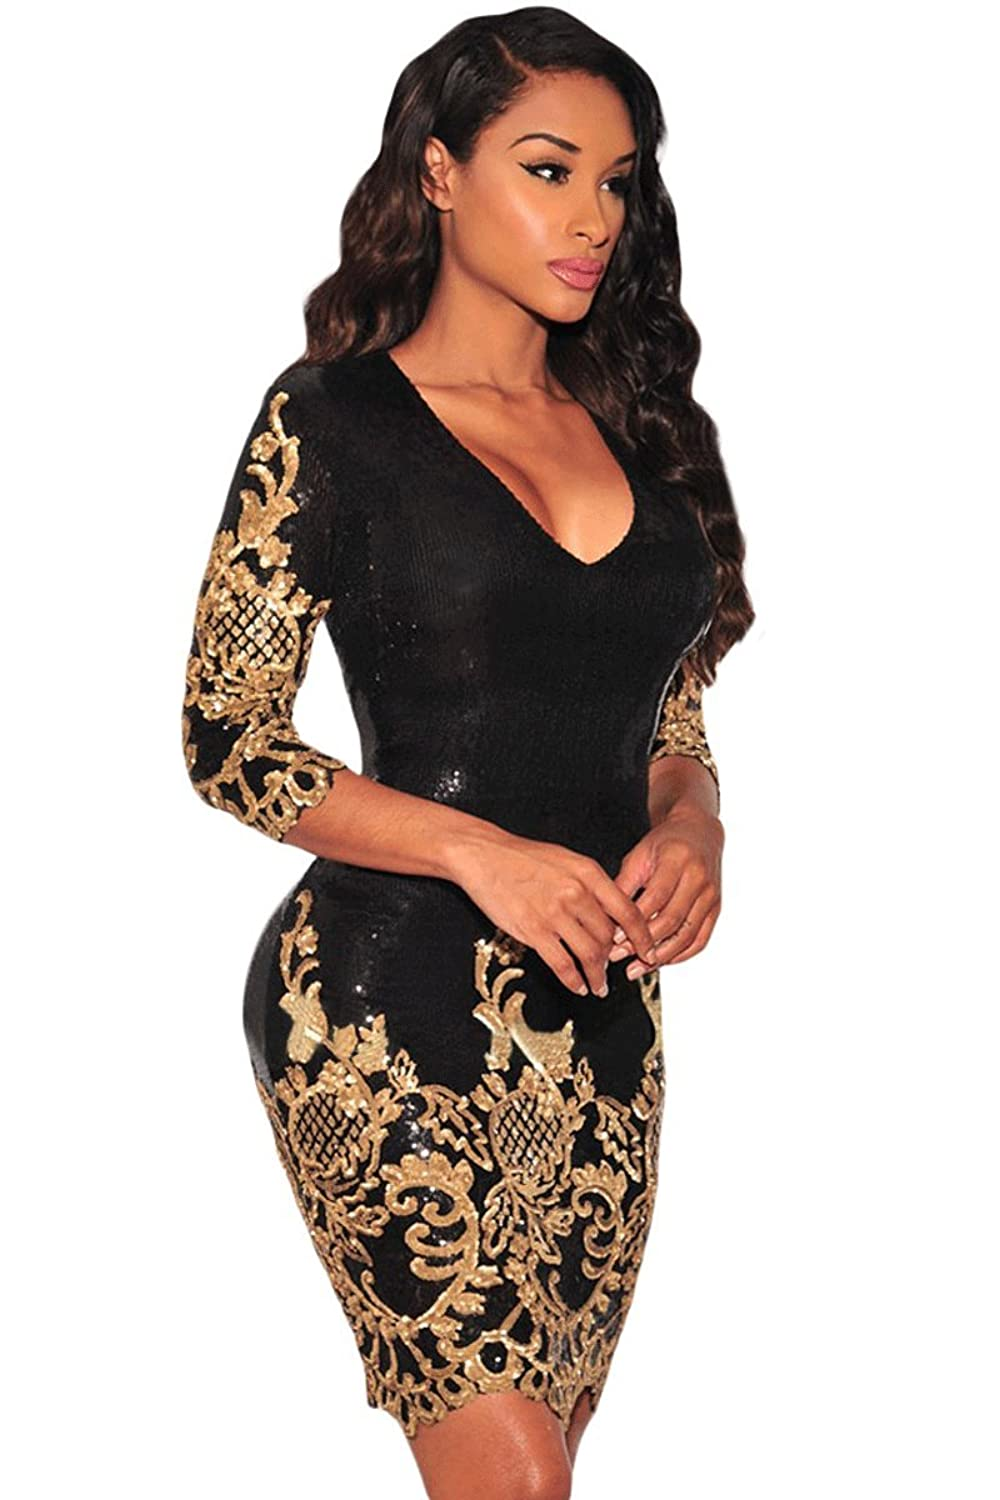 black and gold sequins dress party club new years eve comes in UK Sizes 8-10 and 12-14 (S,M)